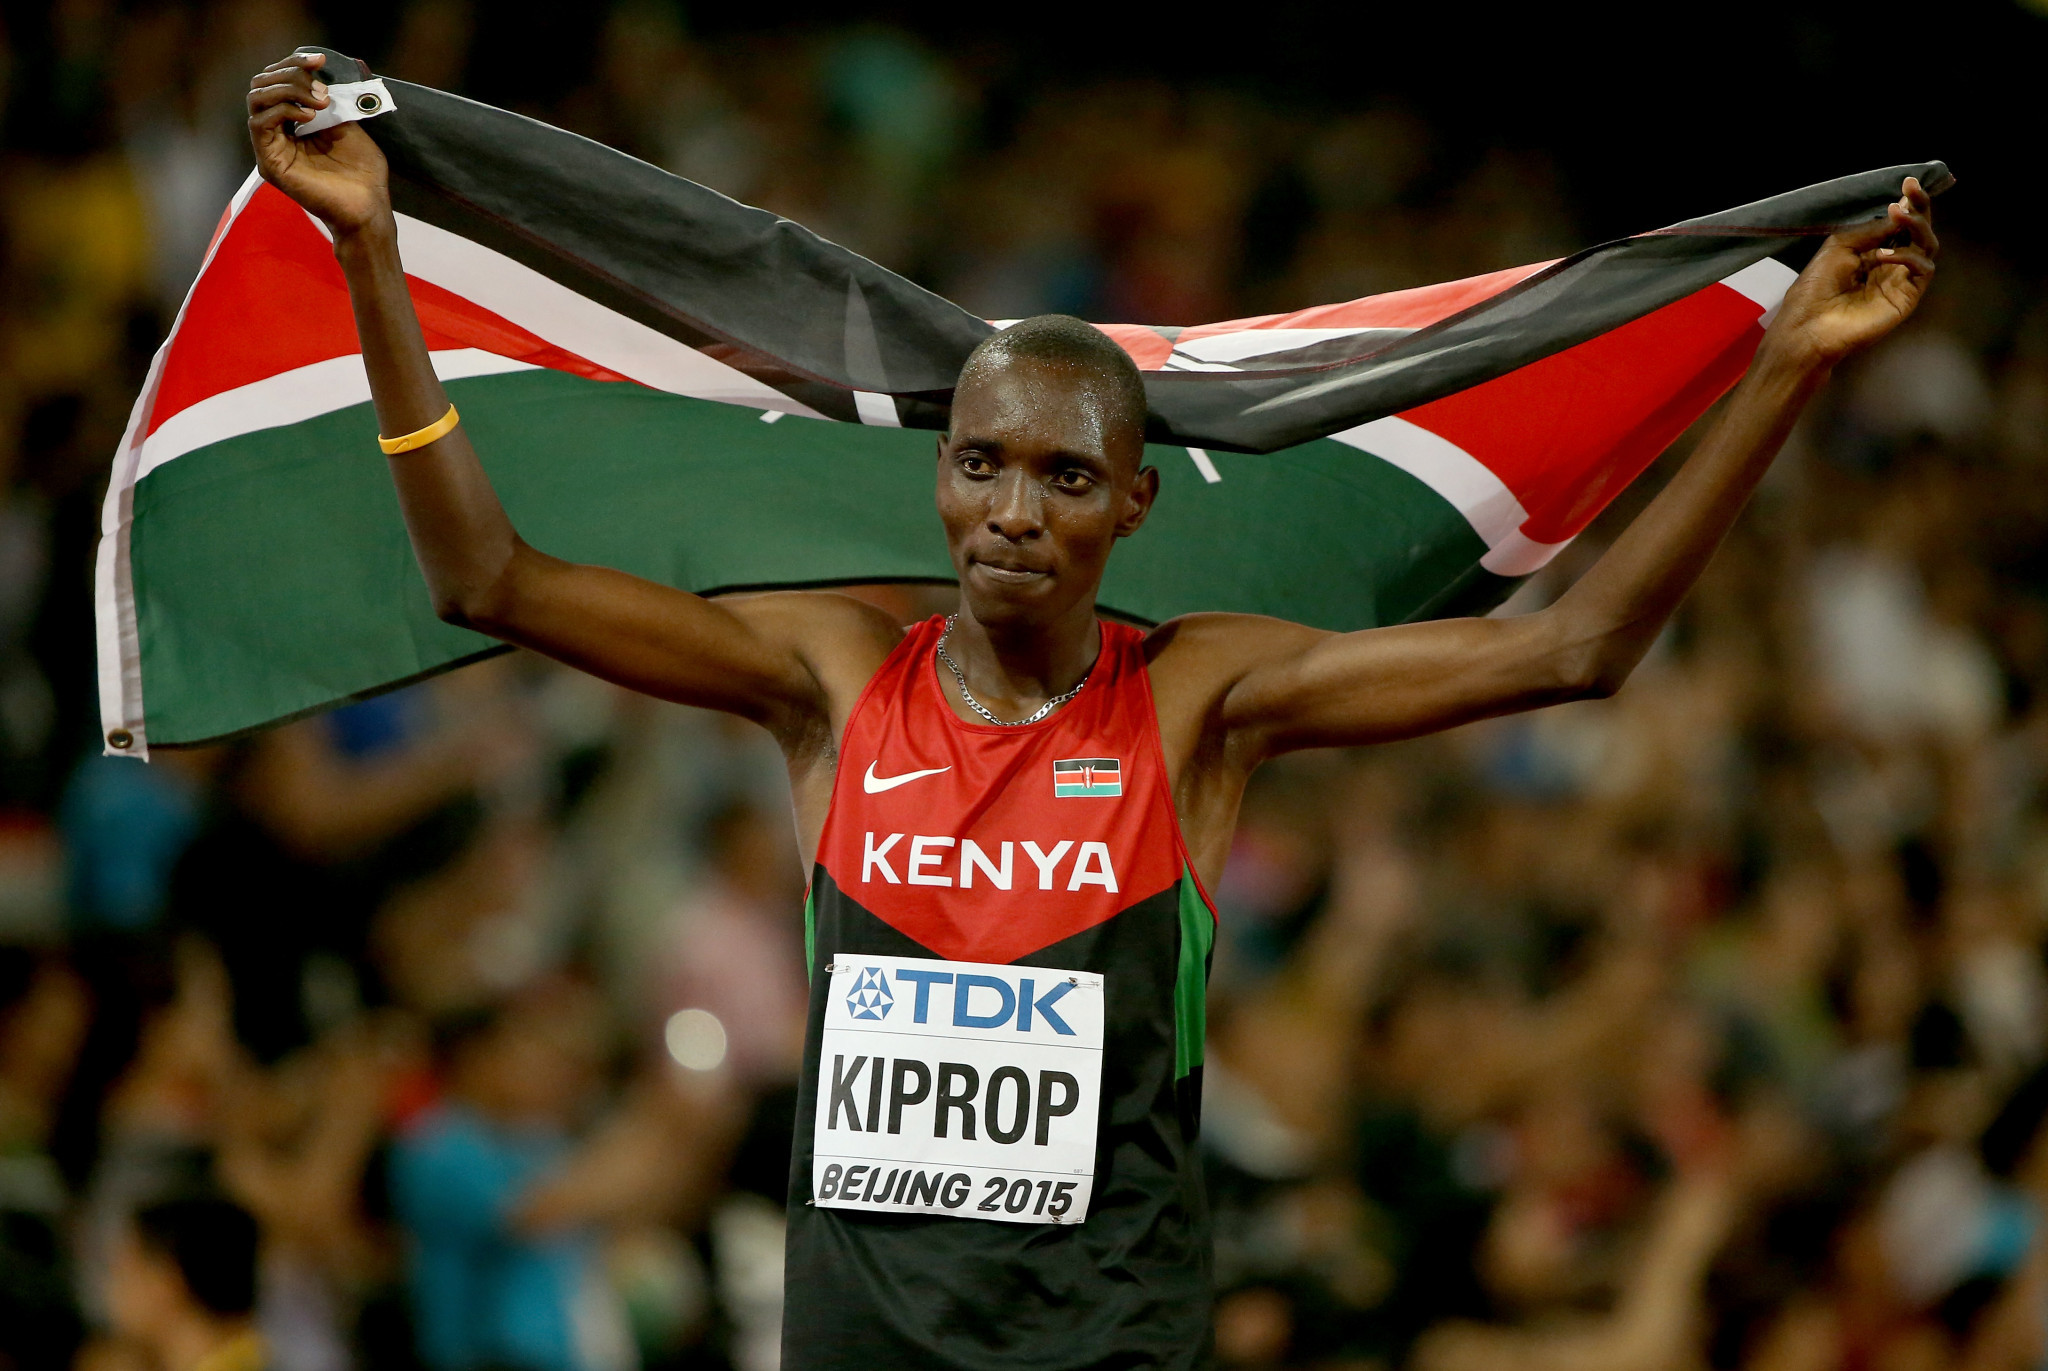 Three-time world champion and Olympic 1500 metres gold medallist Asbel Kiprop is one of 44 Kenyan athletes currently banned or suspended for doping ©Getty Images